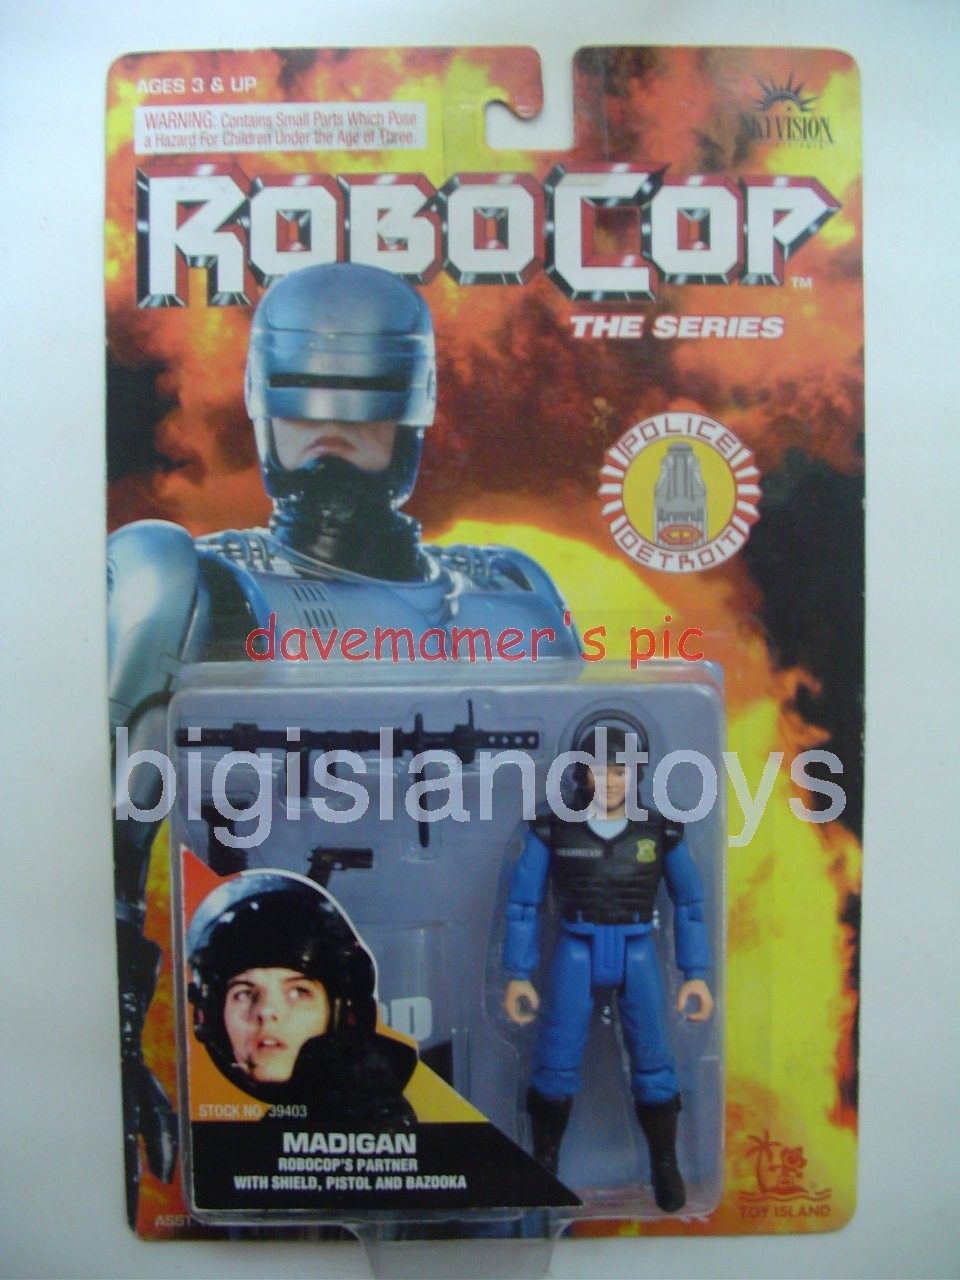 Robocop The Series   Lisa MadiganWith Helmet